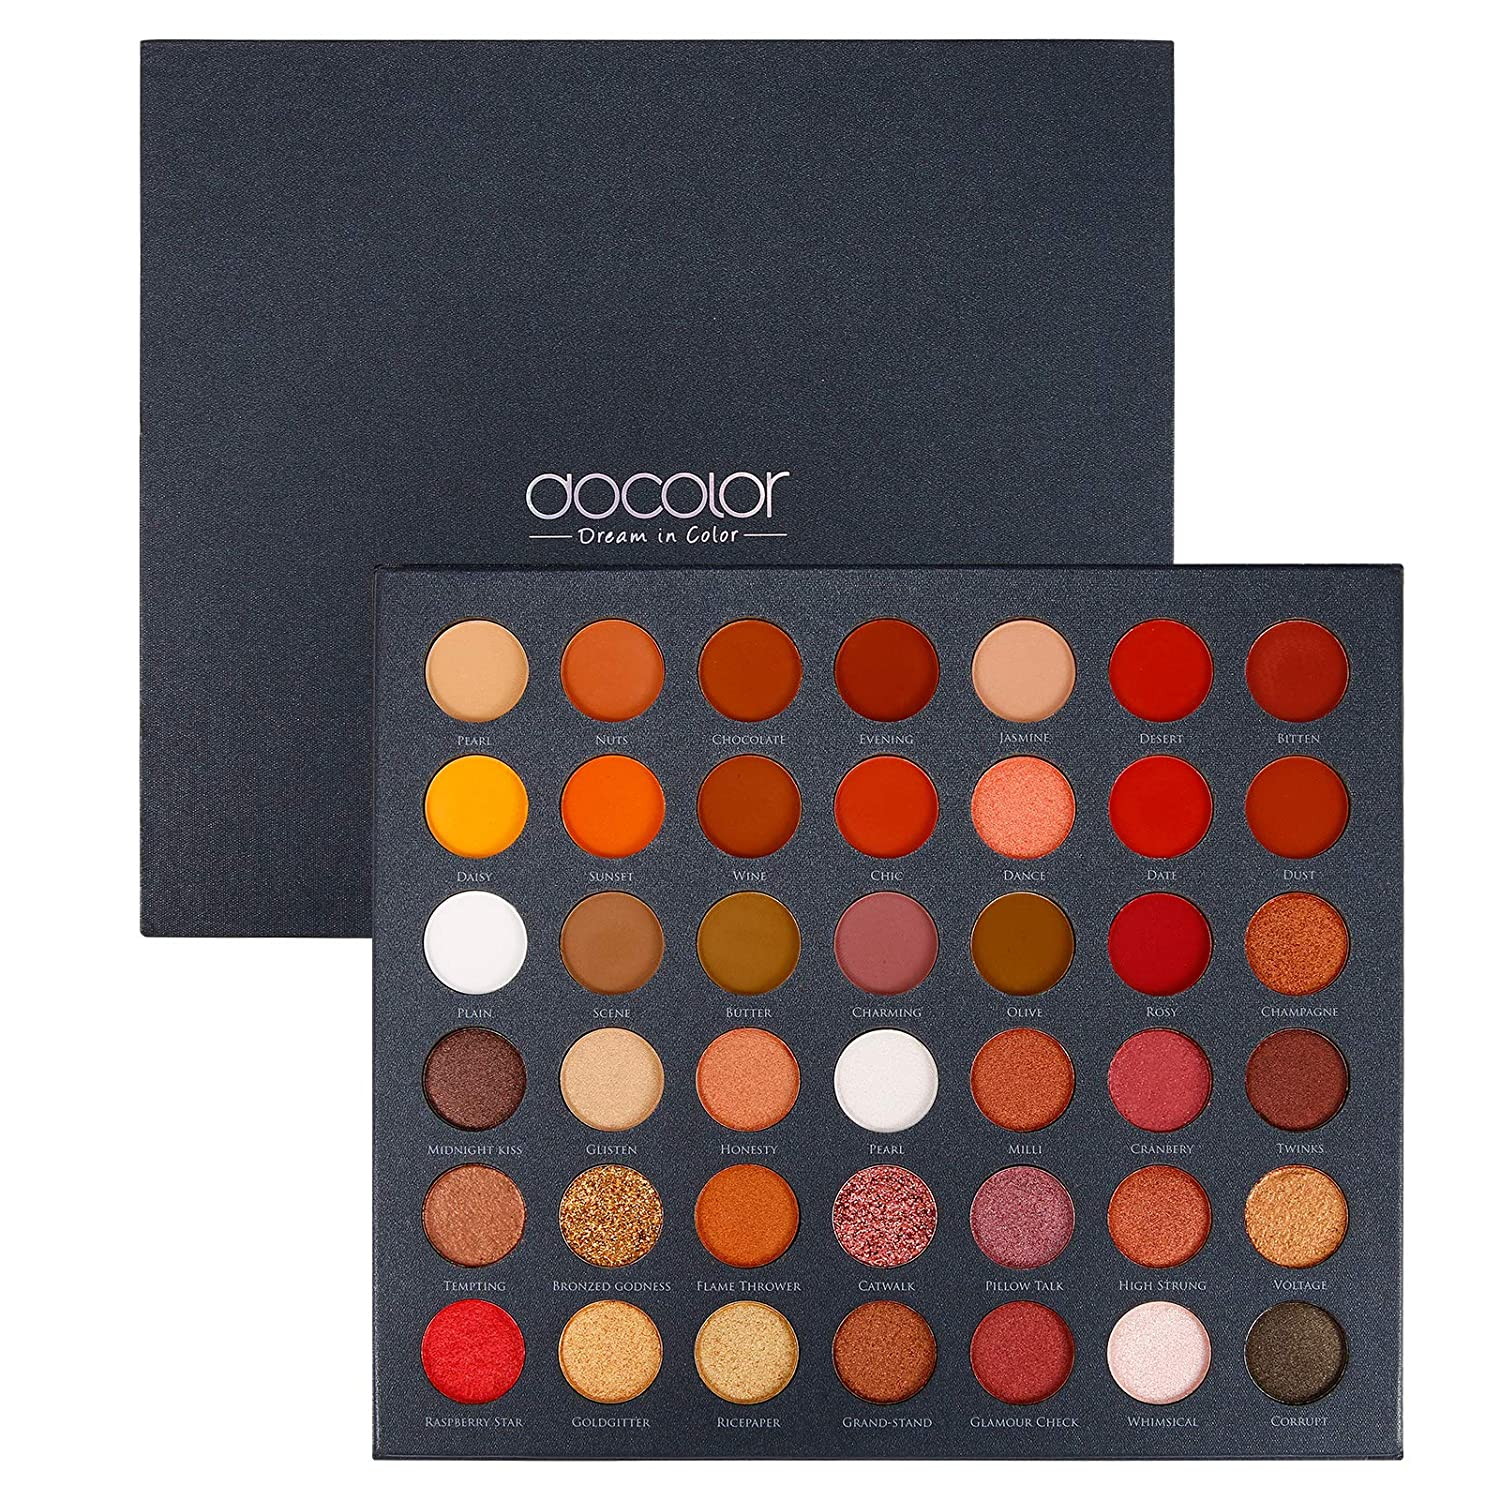 Docolor Eyeshadow Palette, Matte Shimmer 42 Colors Ultra Pigmented Metallic Make Up Eye Shadow Powder, Natural Warm Glitter Color Shades, Long Lasting Waterproof Professional Makeup Palette